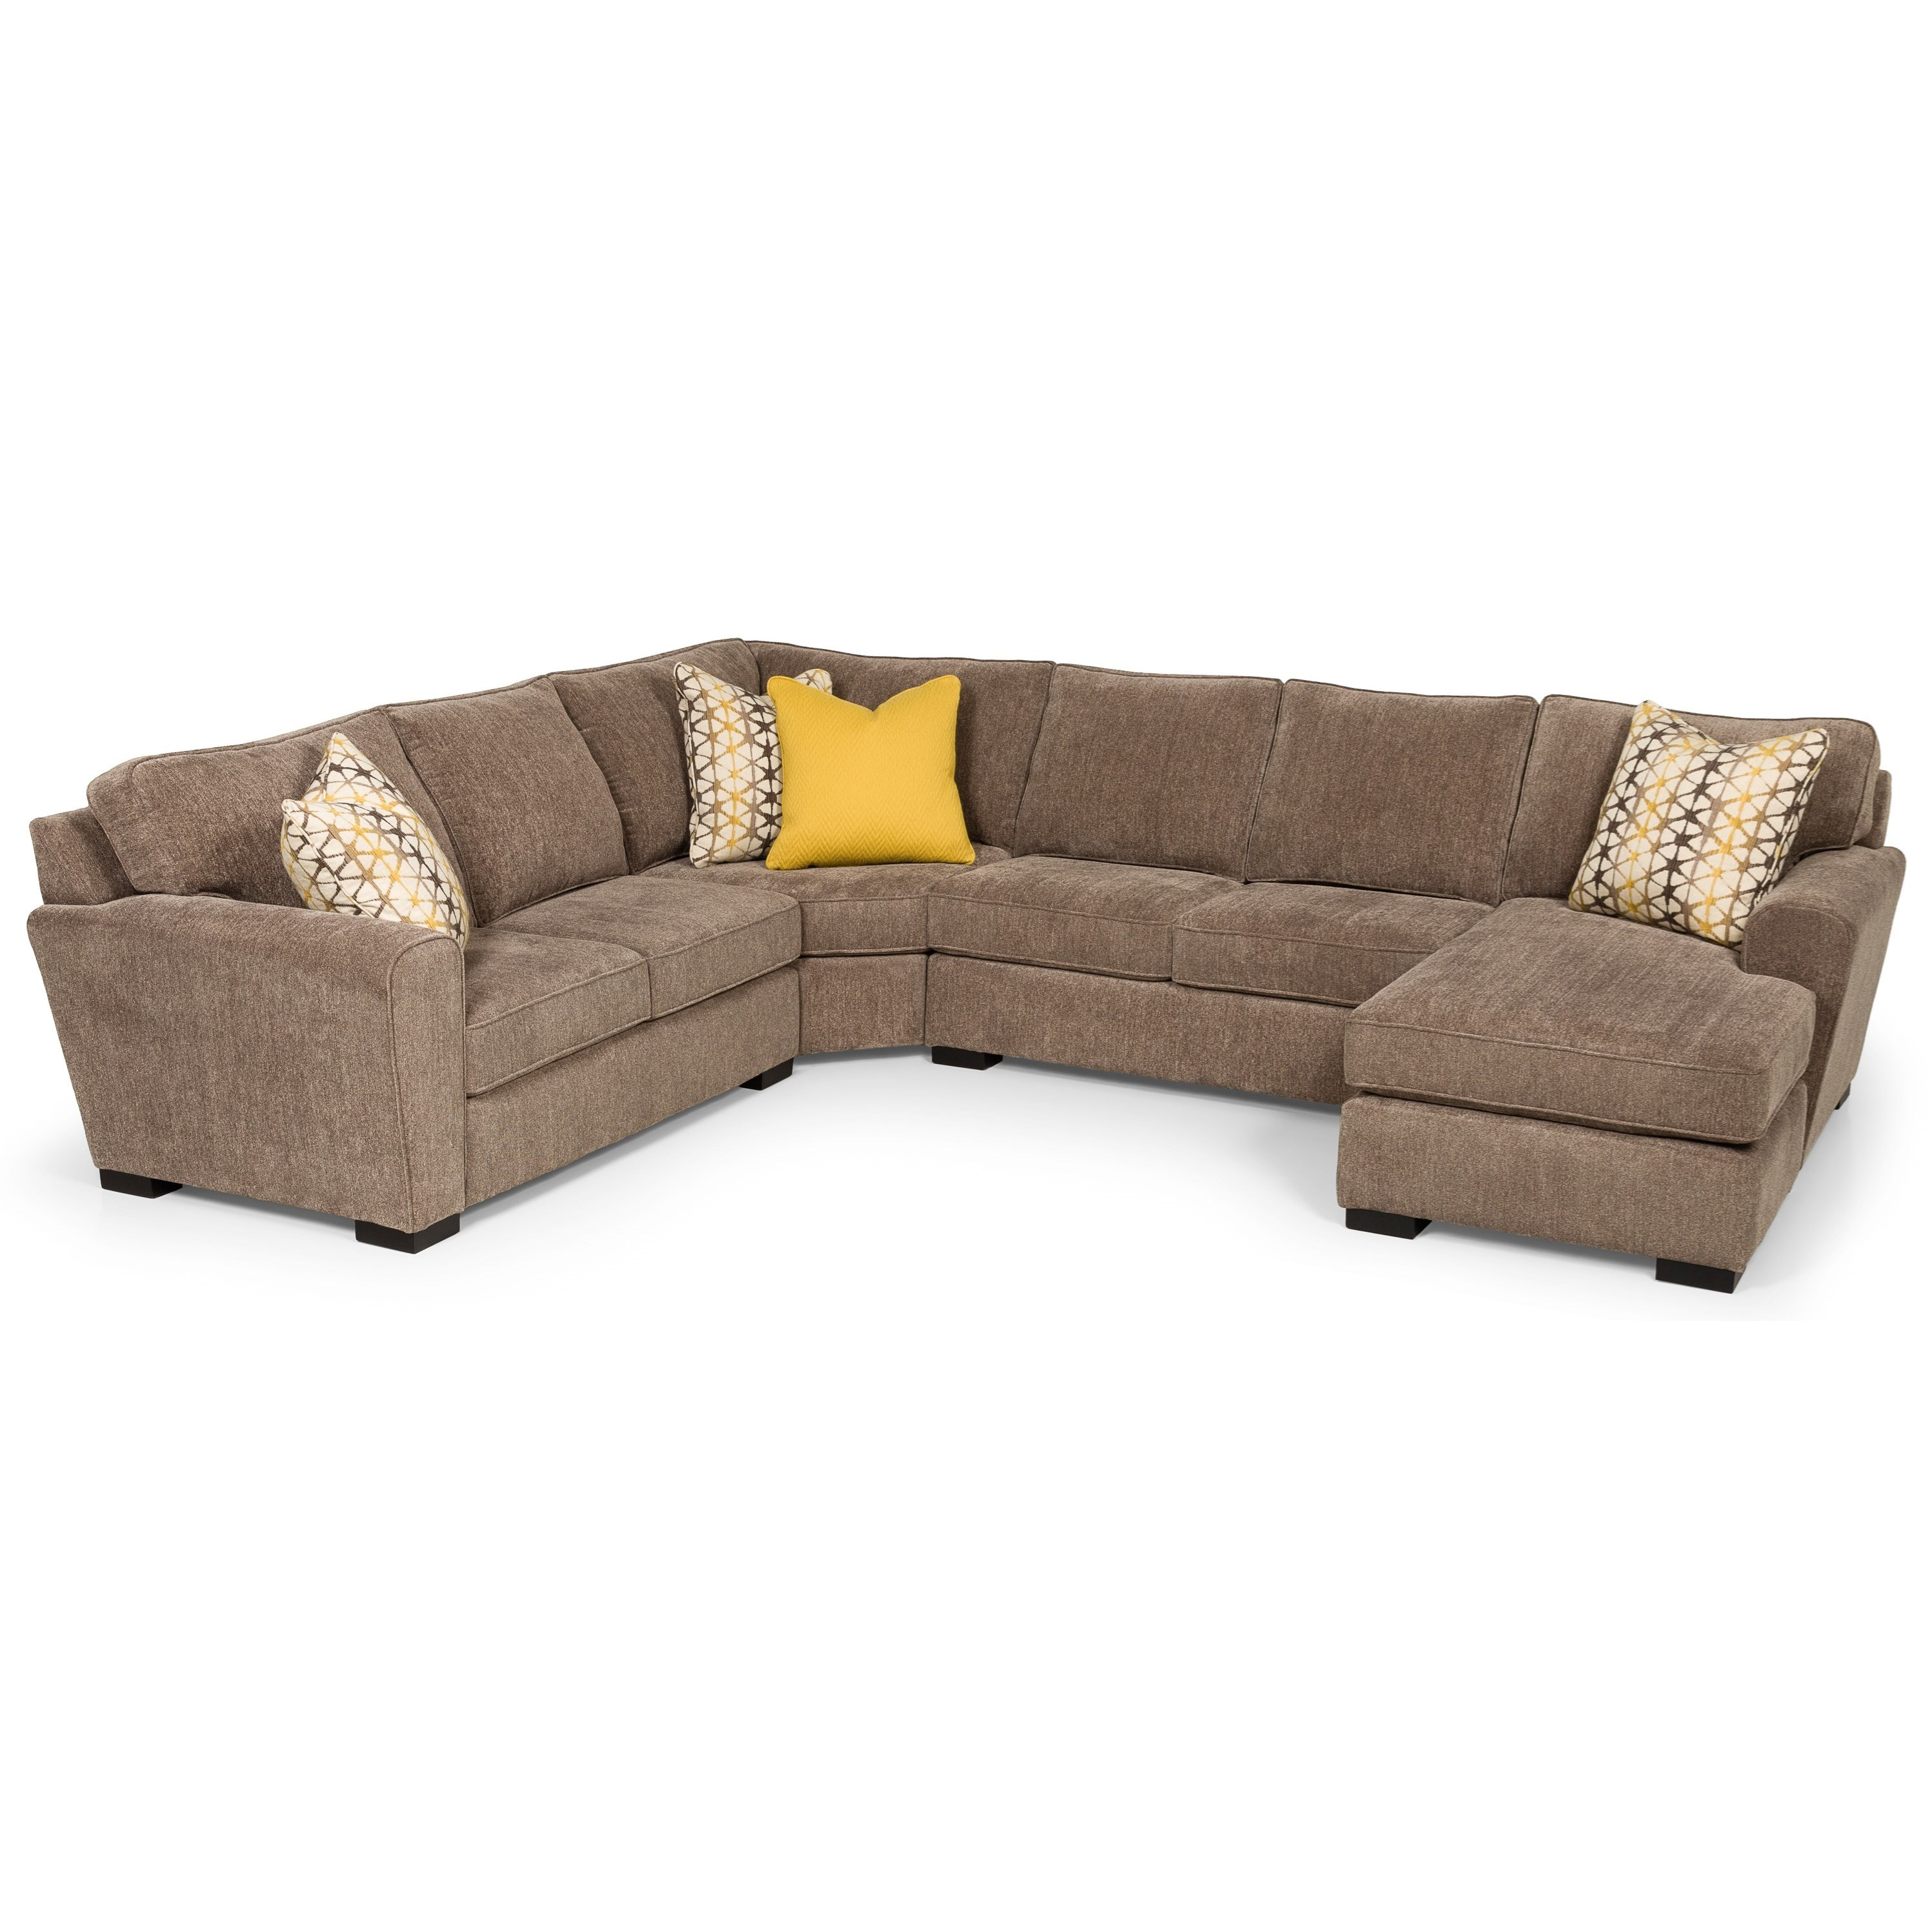 323 4-Piece Sectional by Stanton at Wilson's Furniture